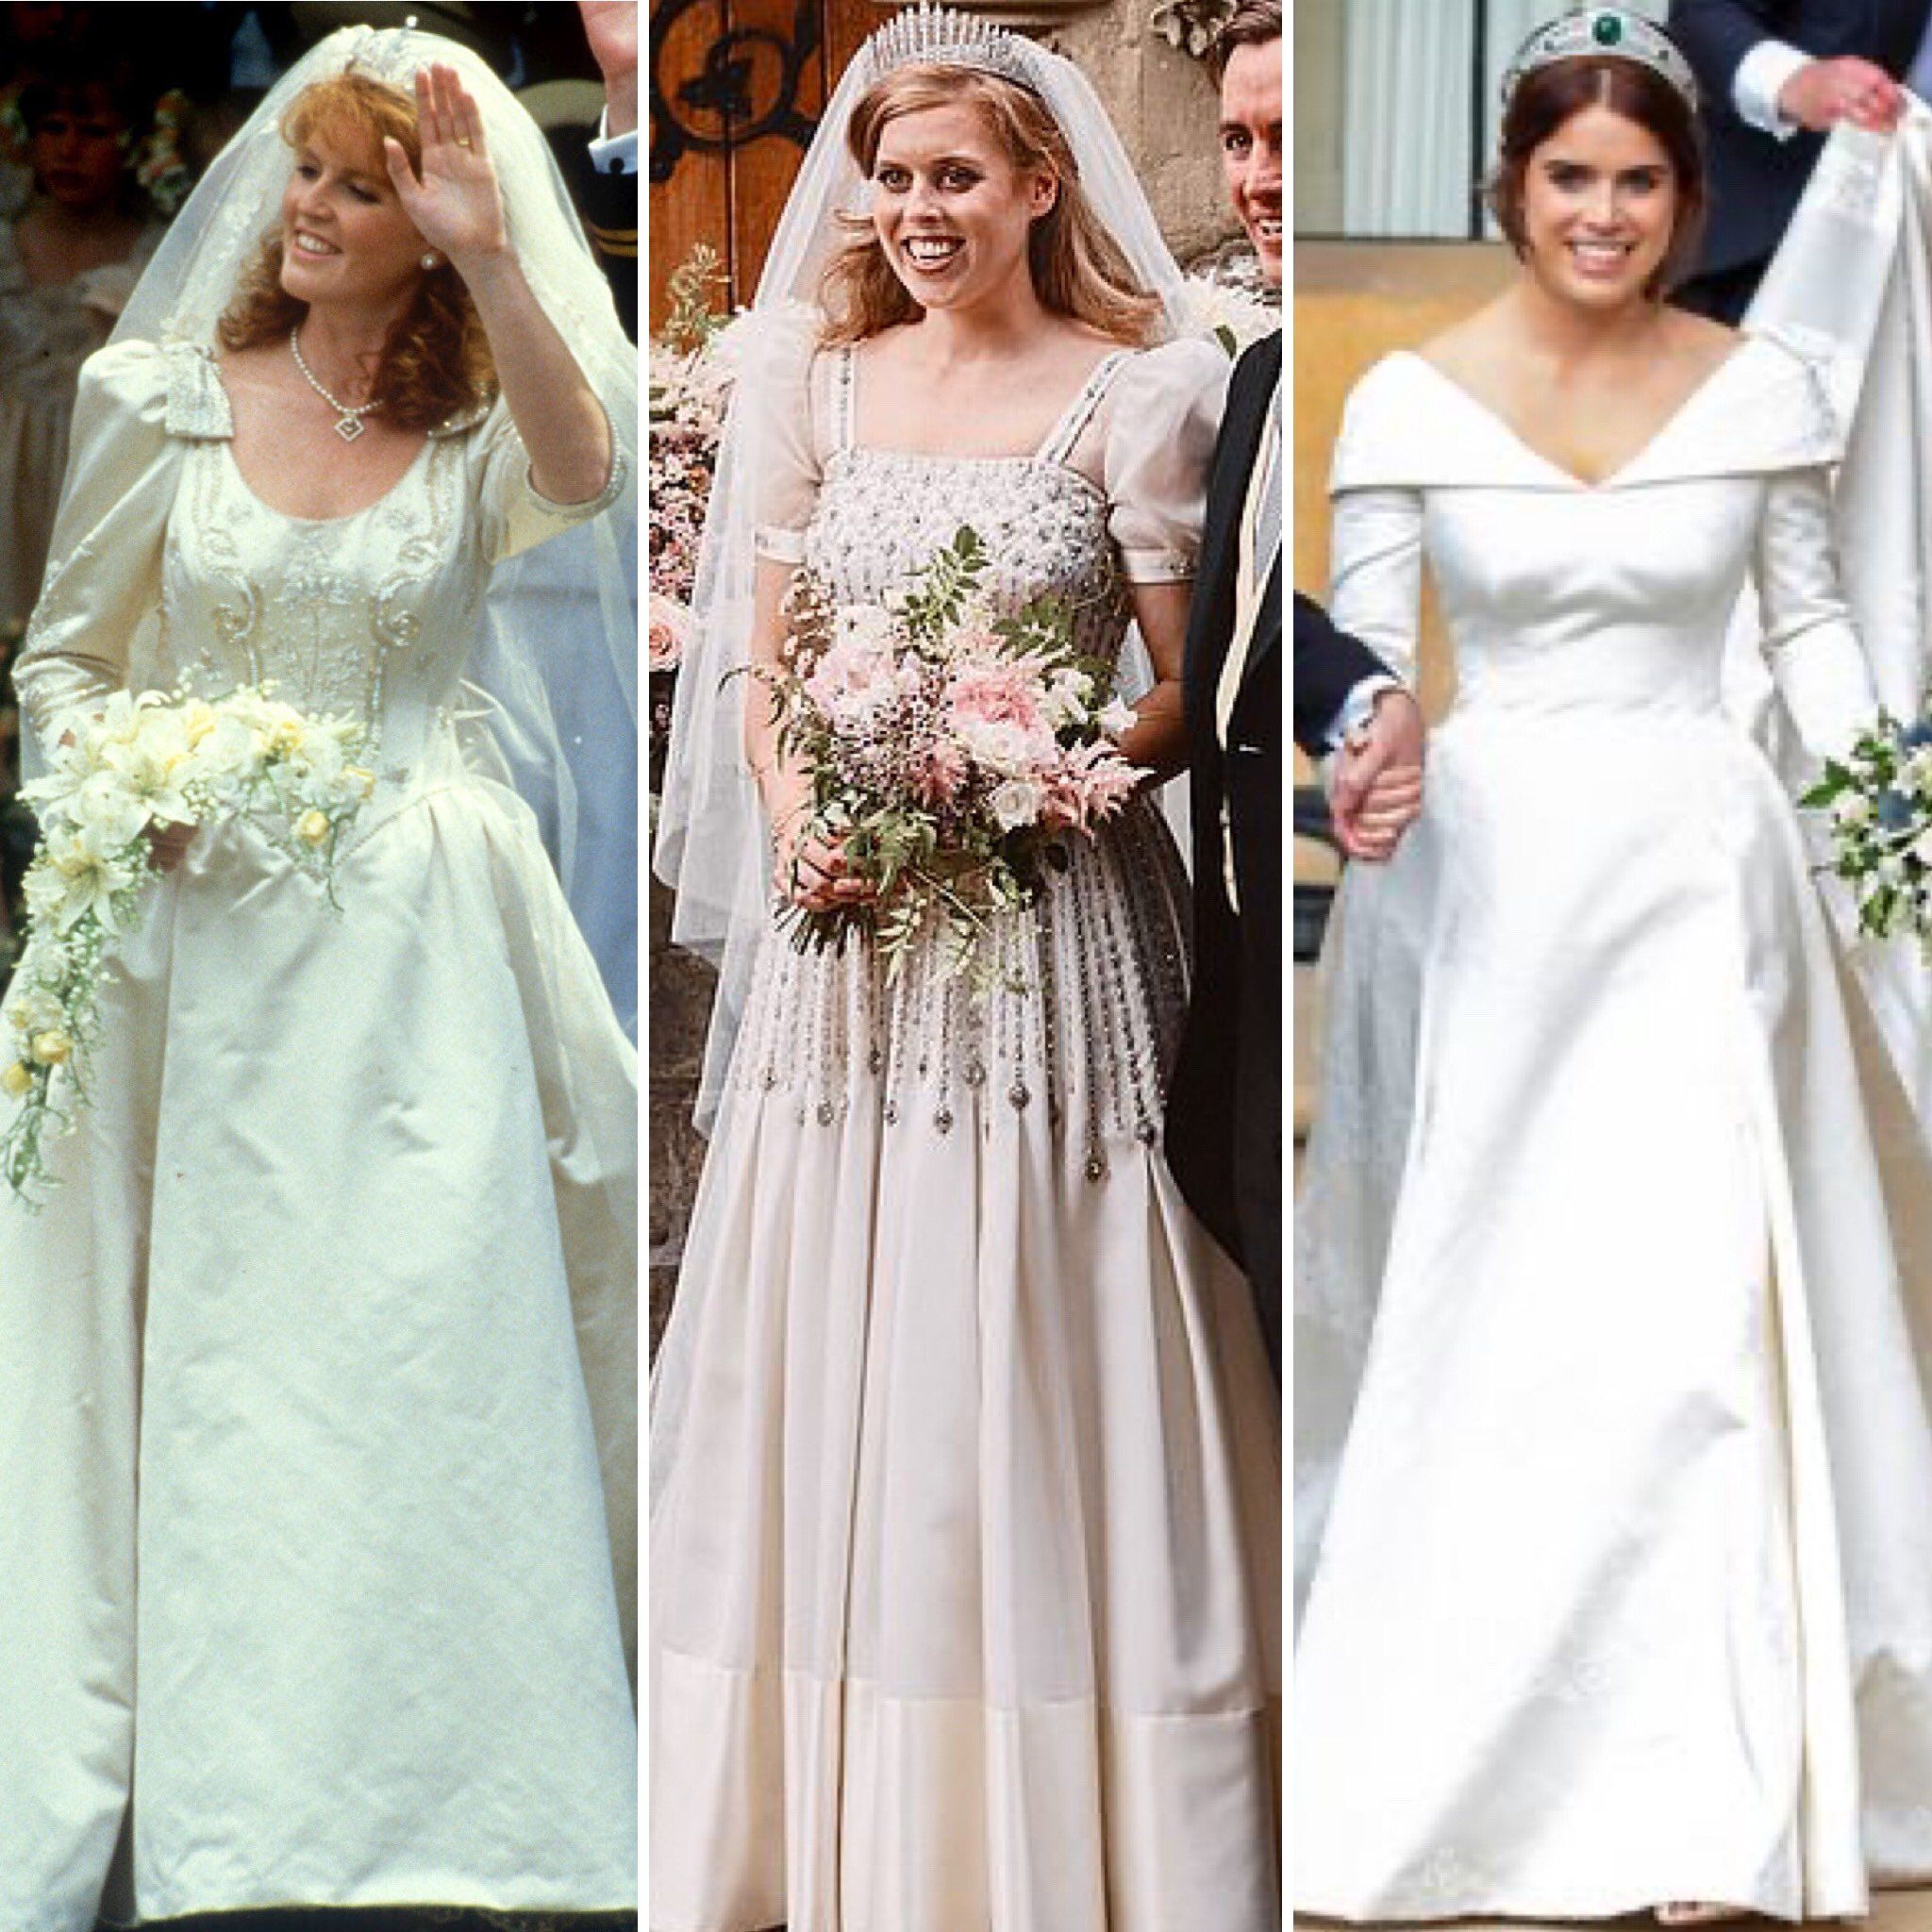 Kelly Mathews on Twitter in 2020 Royal wedding gowns